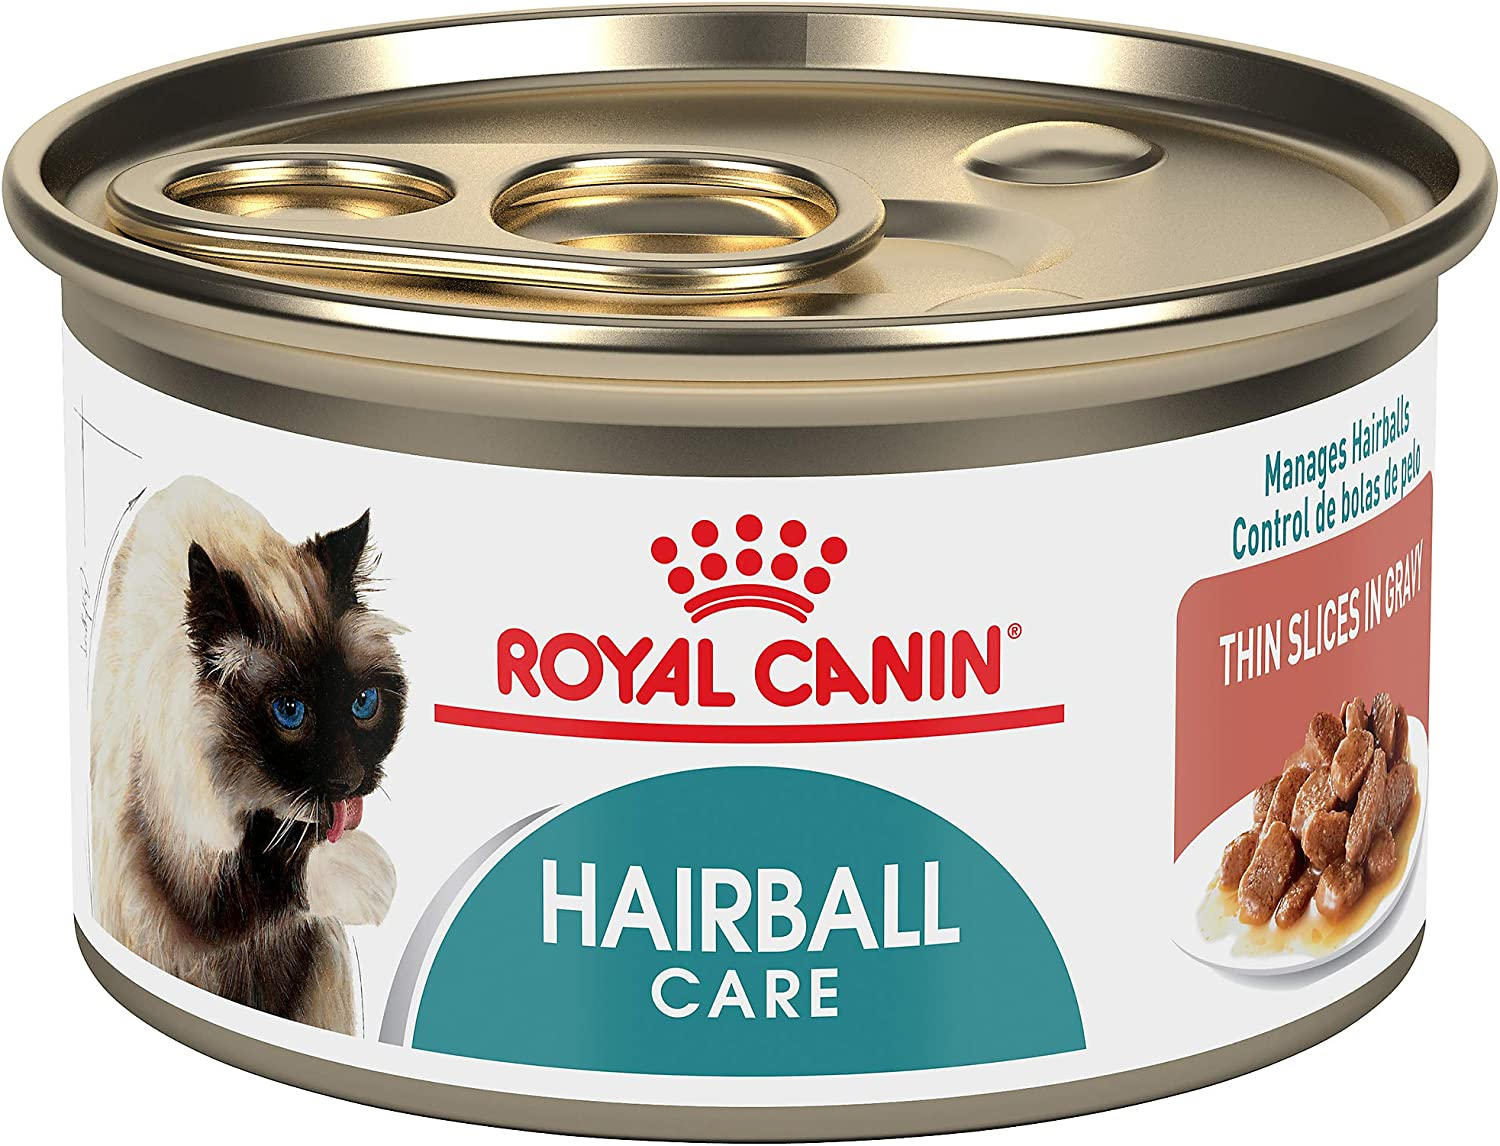 Royal Canin Hairball Care Thin Slices in Gravy Wet Cat Food, 3 oz. can, Pack of 24